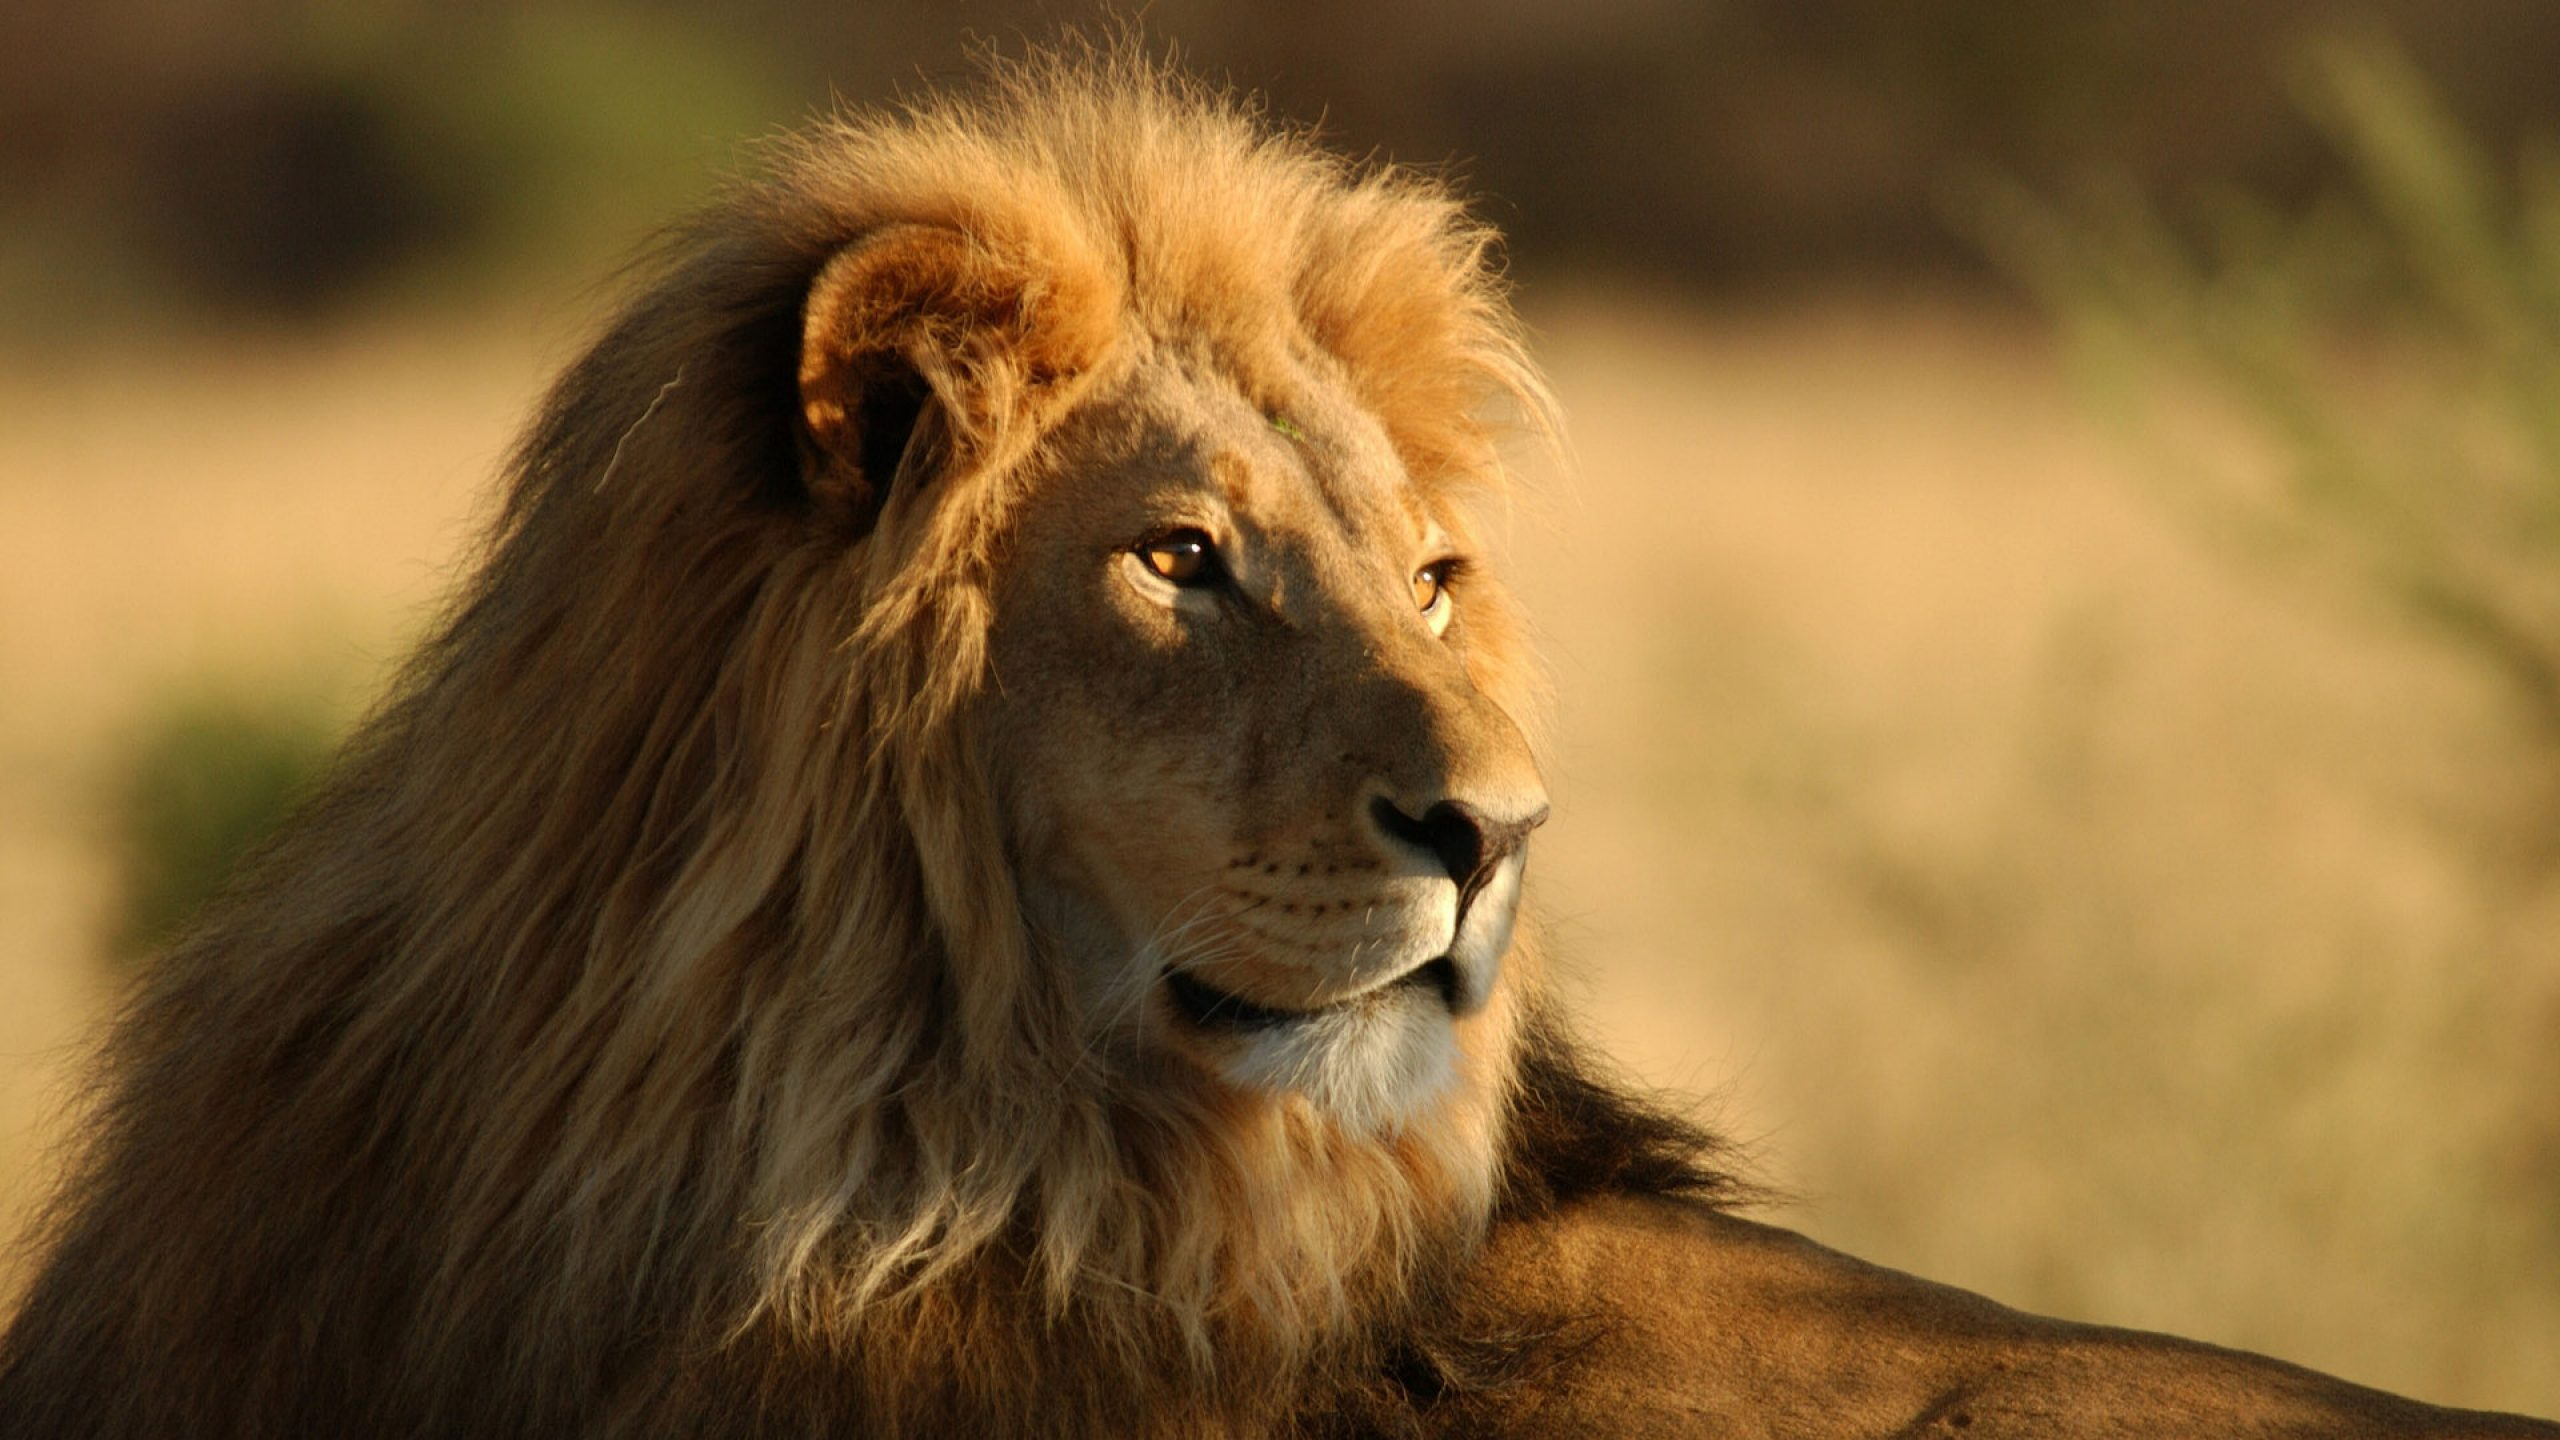 lion wallpapers 2